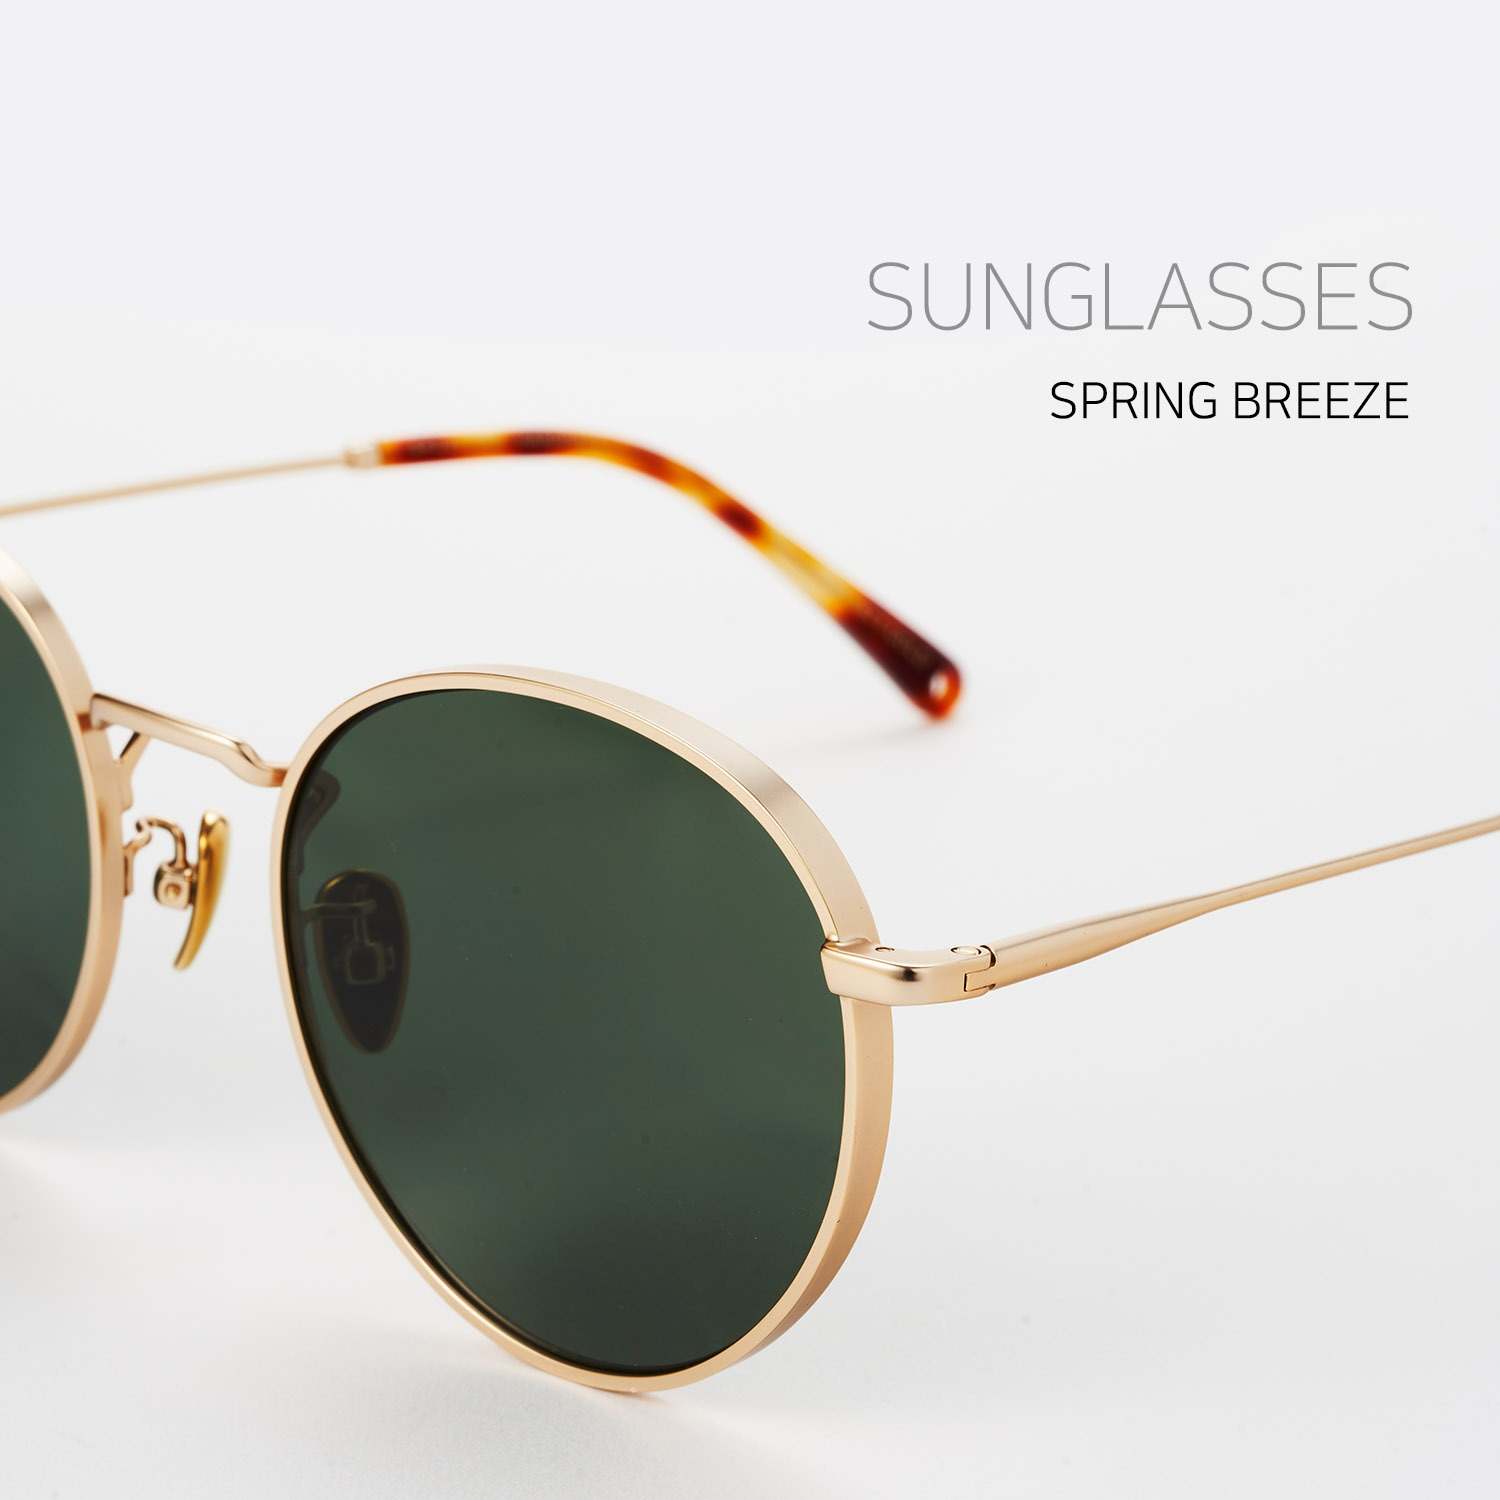 SUNGLASSES _ SPRING BREEZE